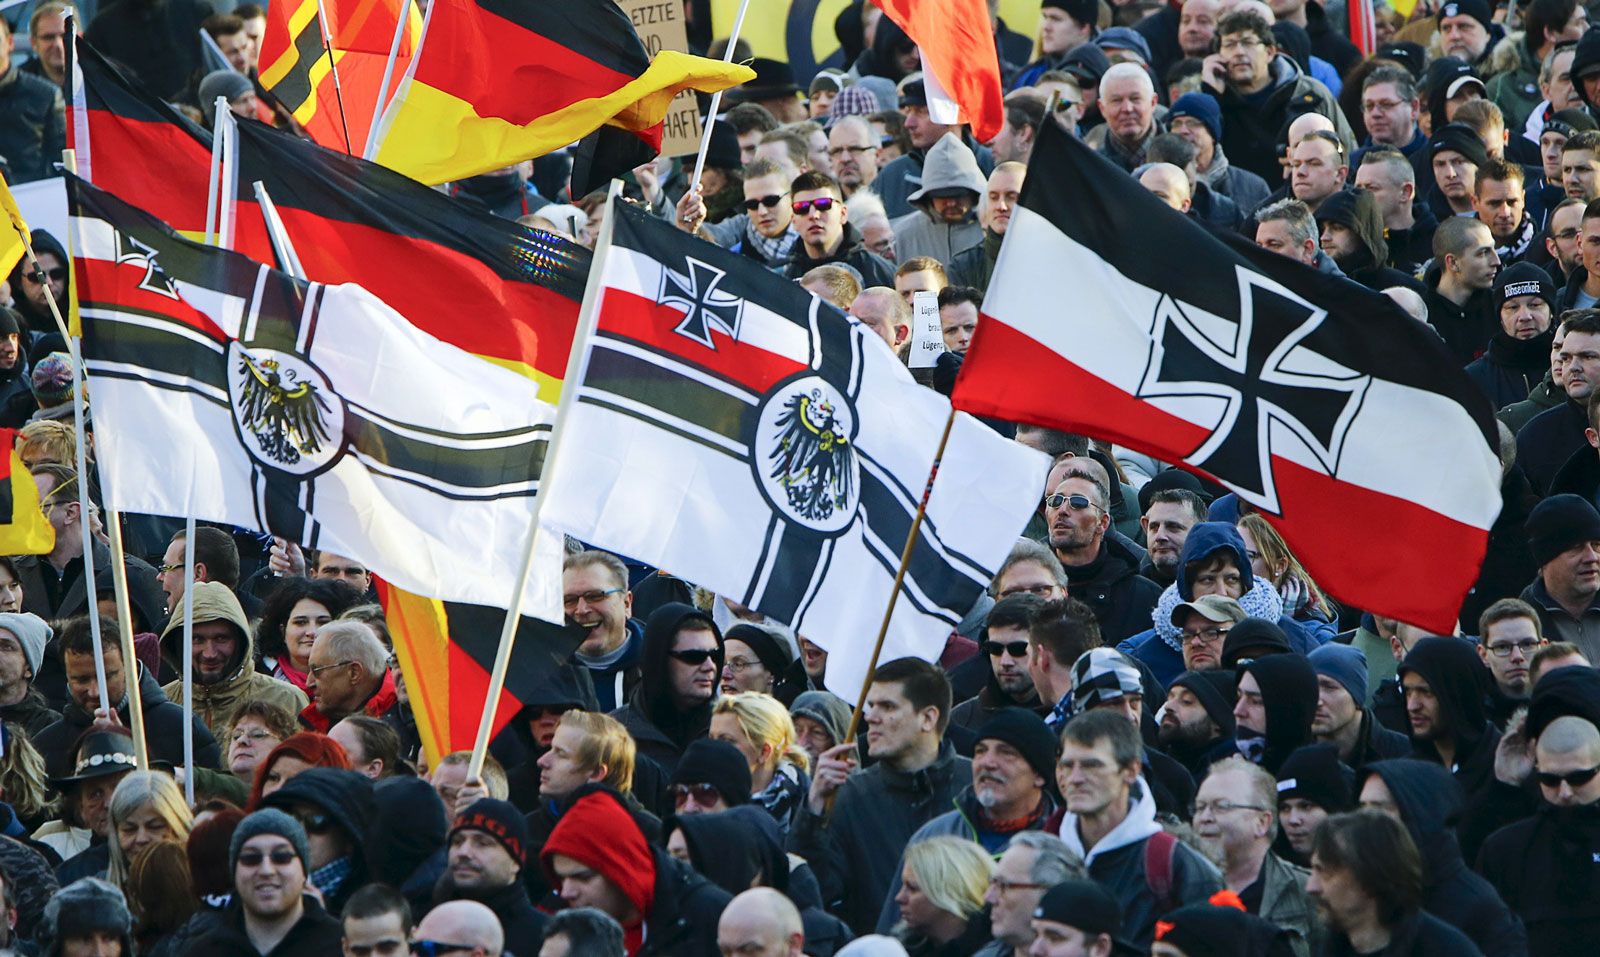 Supporters of the anti-immigration right-wing movement Pegida (Patriotic Europeans Against the Islamisation of the West) carry versions of the Imperial War Flag (Reichskriegsflagge) during a demonstration march, in reaction to mass assaults on women on New Year's Eve in Cologne, Germany, January 9, 2016